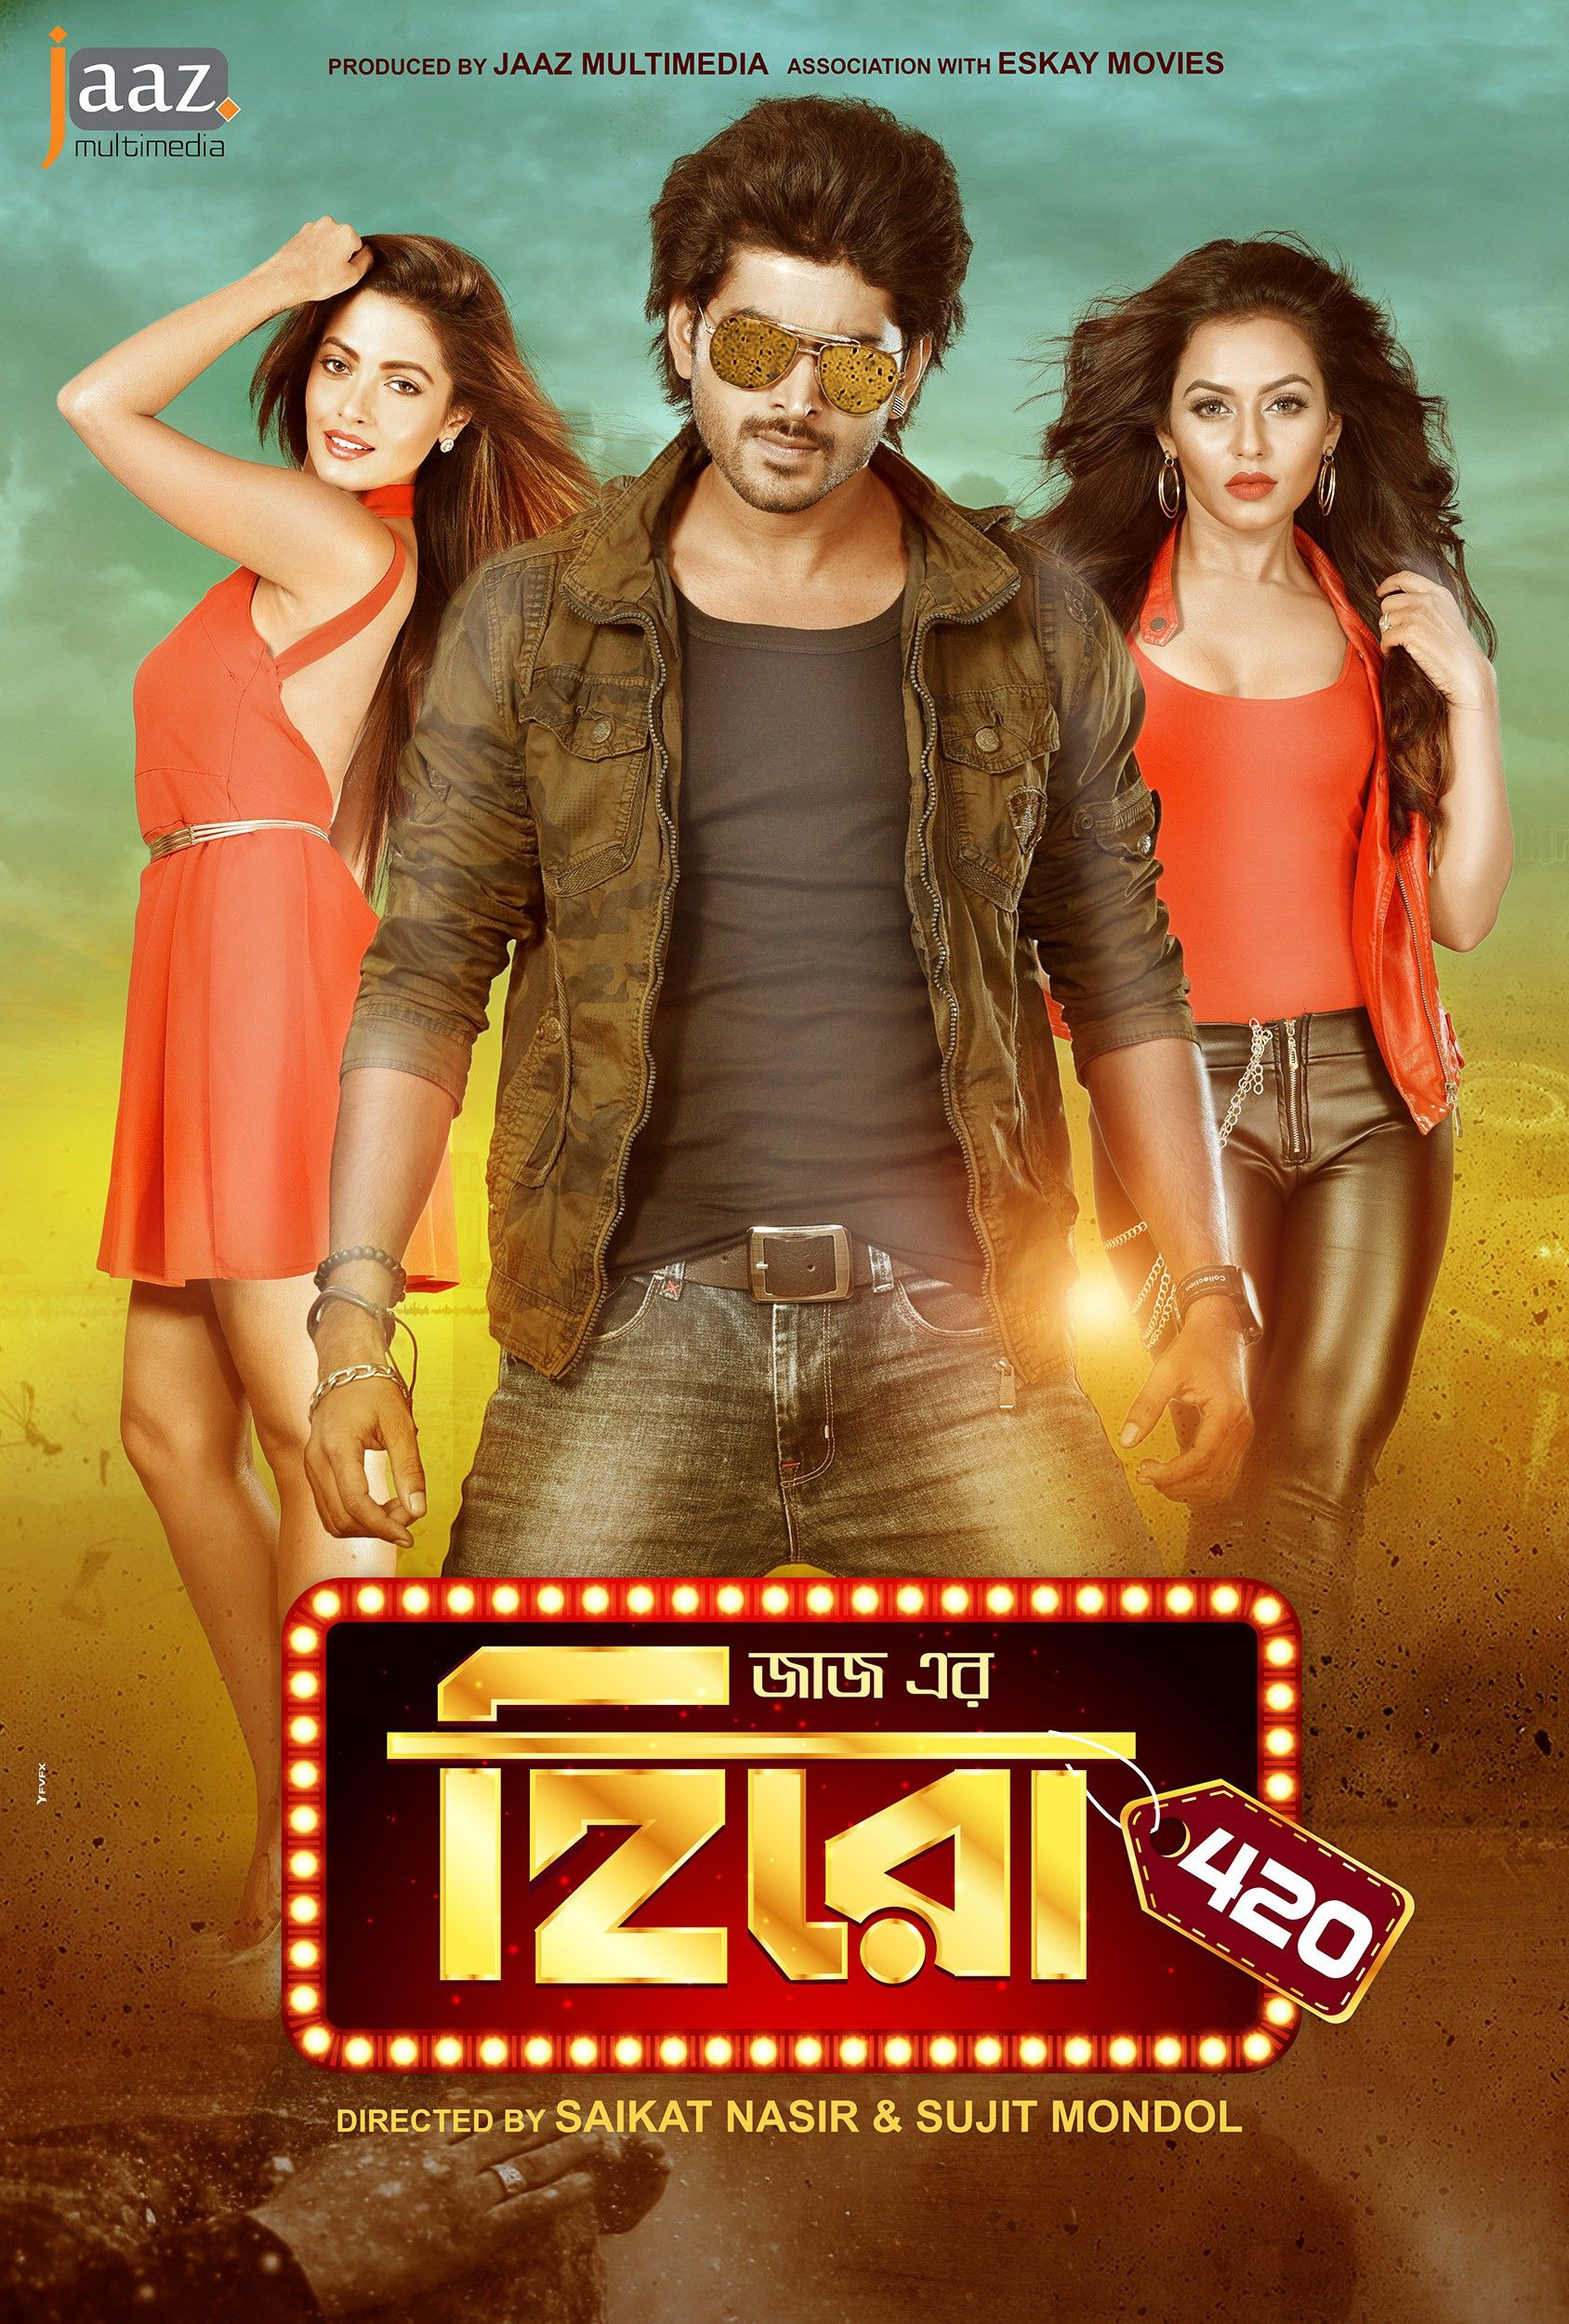 Hero 420 (2016) Bangla Full Movie DVDScr 700MB Download - http://djdunia24.com/hero-420-2016-bangla-full-movie-dvdscr-700mb-download/